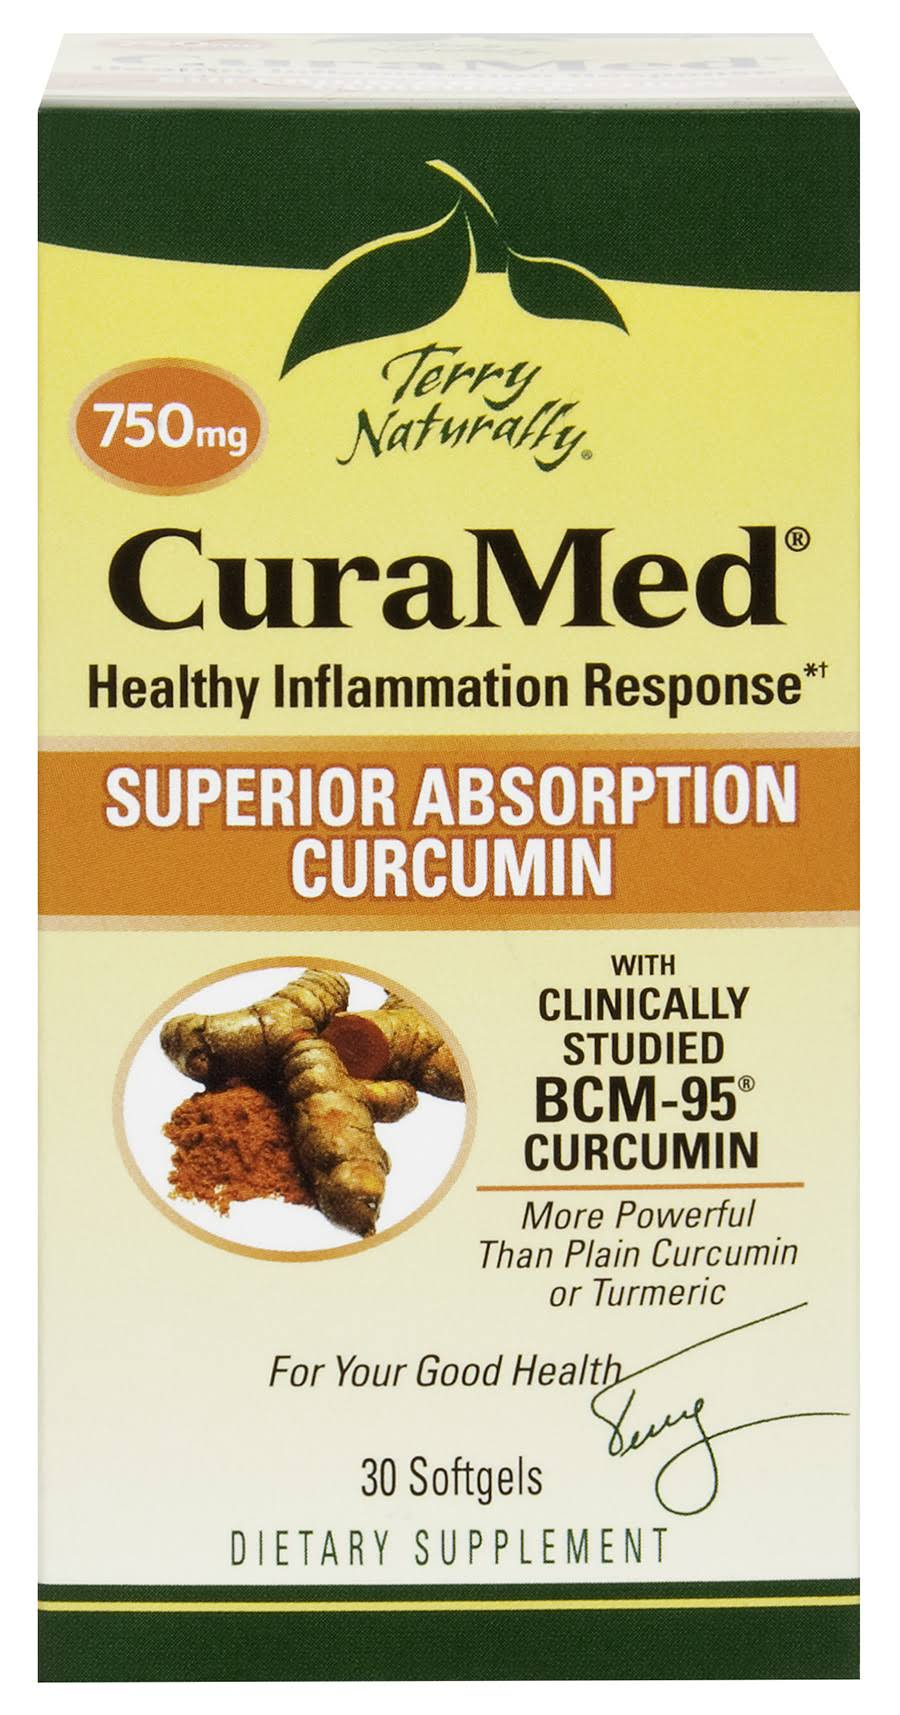 Terry Naturally Curamed Dietary Supplement - 30 Softgels